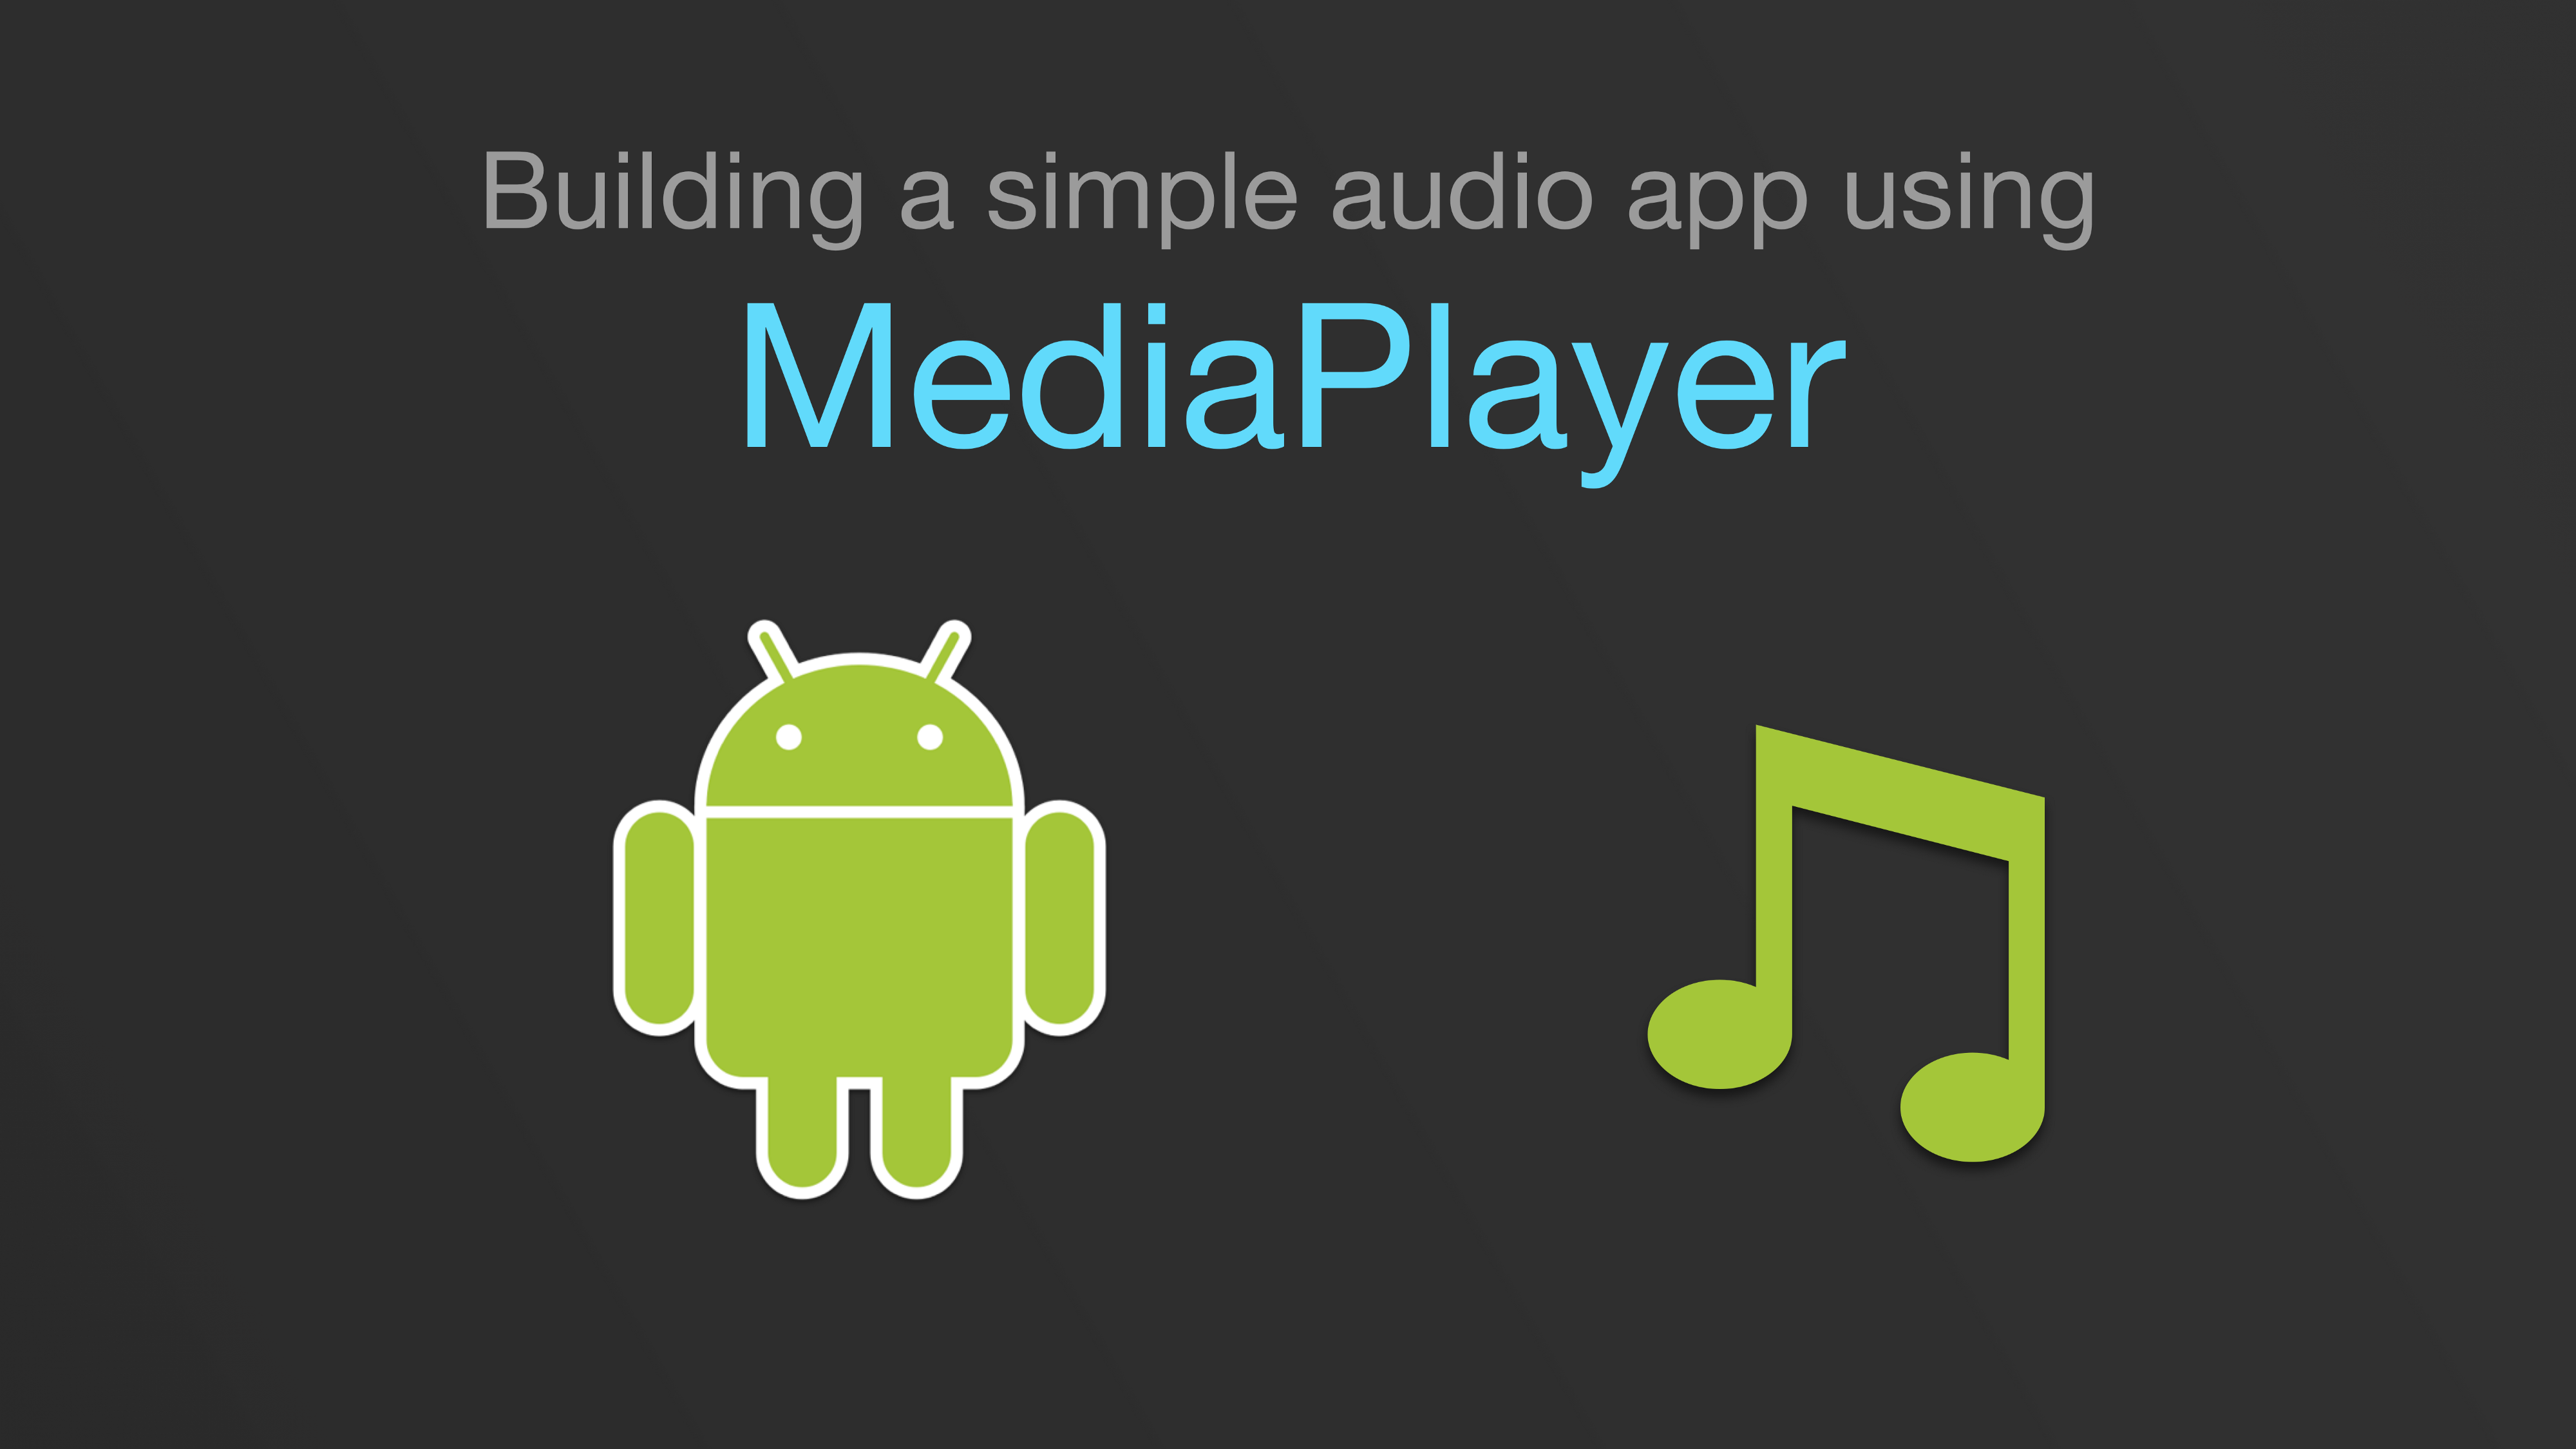 Building a simple audio app in Android (Part 1/3) - Android